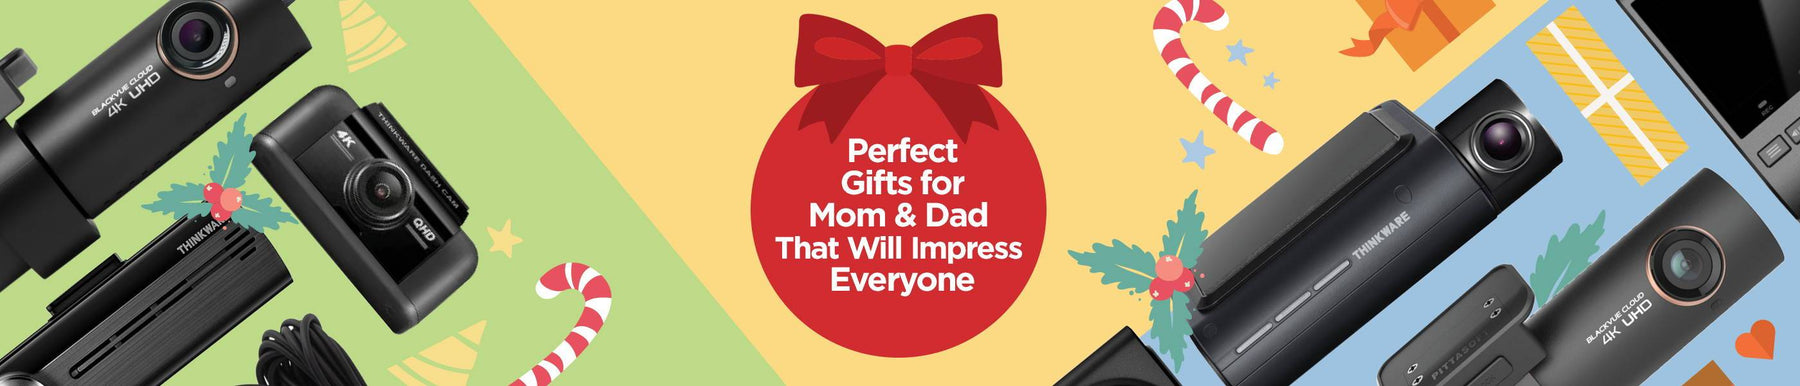 Perfect Gifts for Parents That Will Impress Everyone